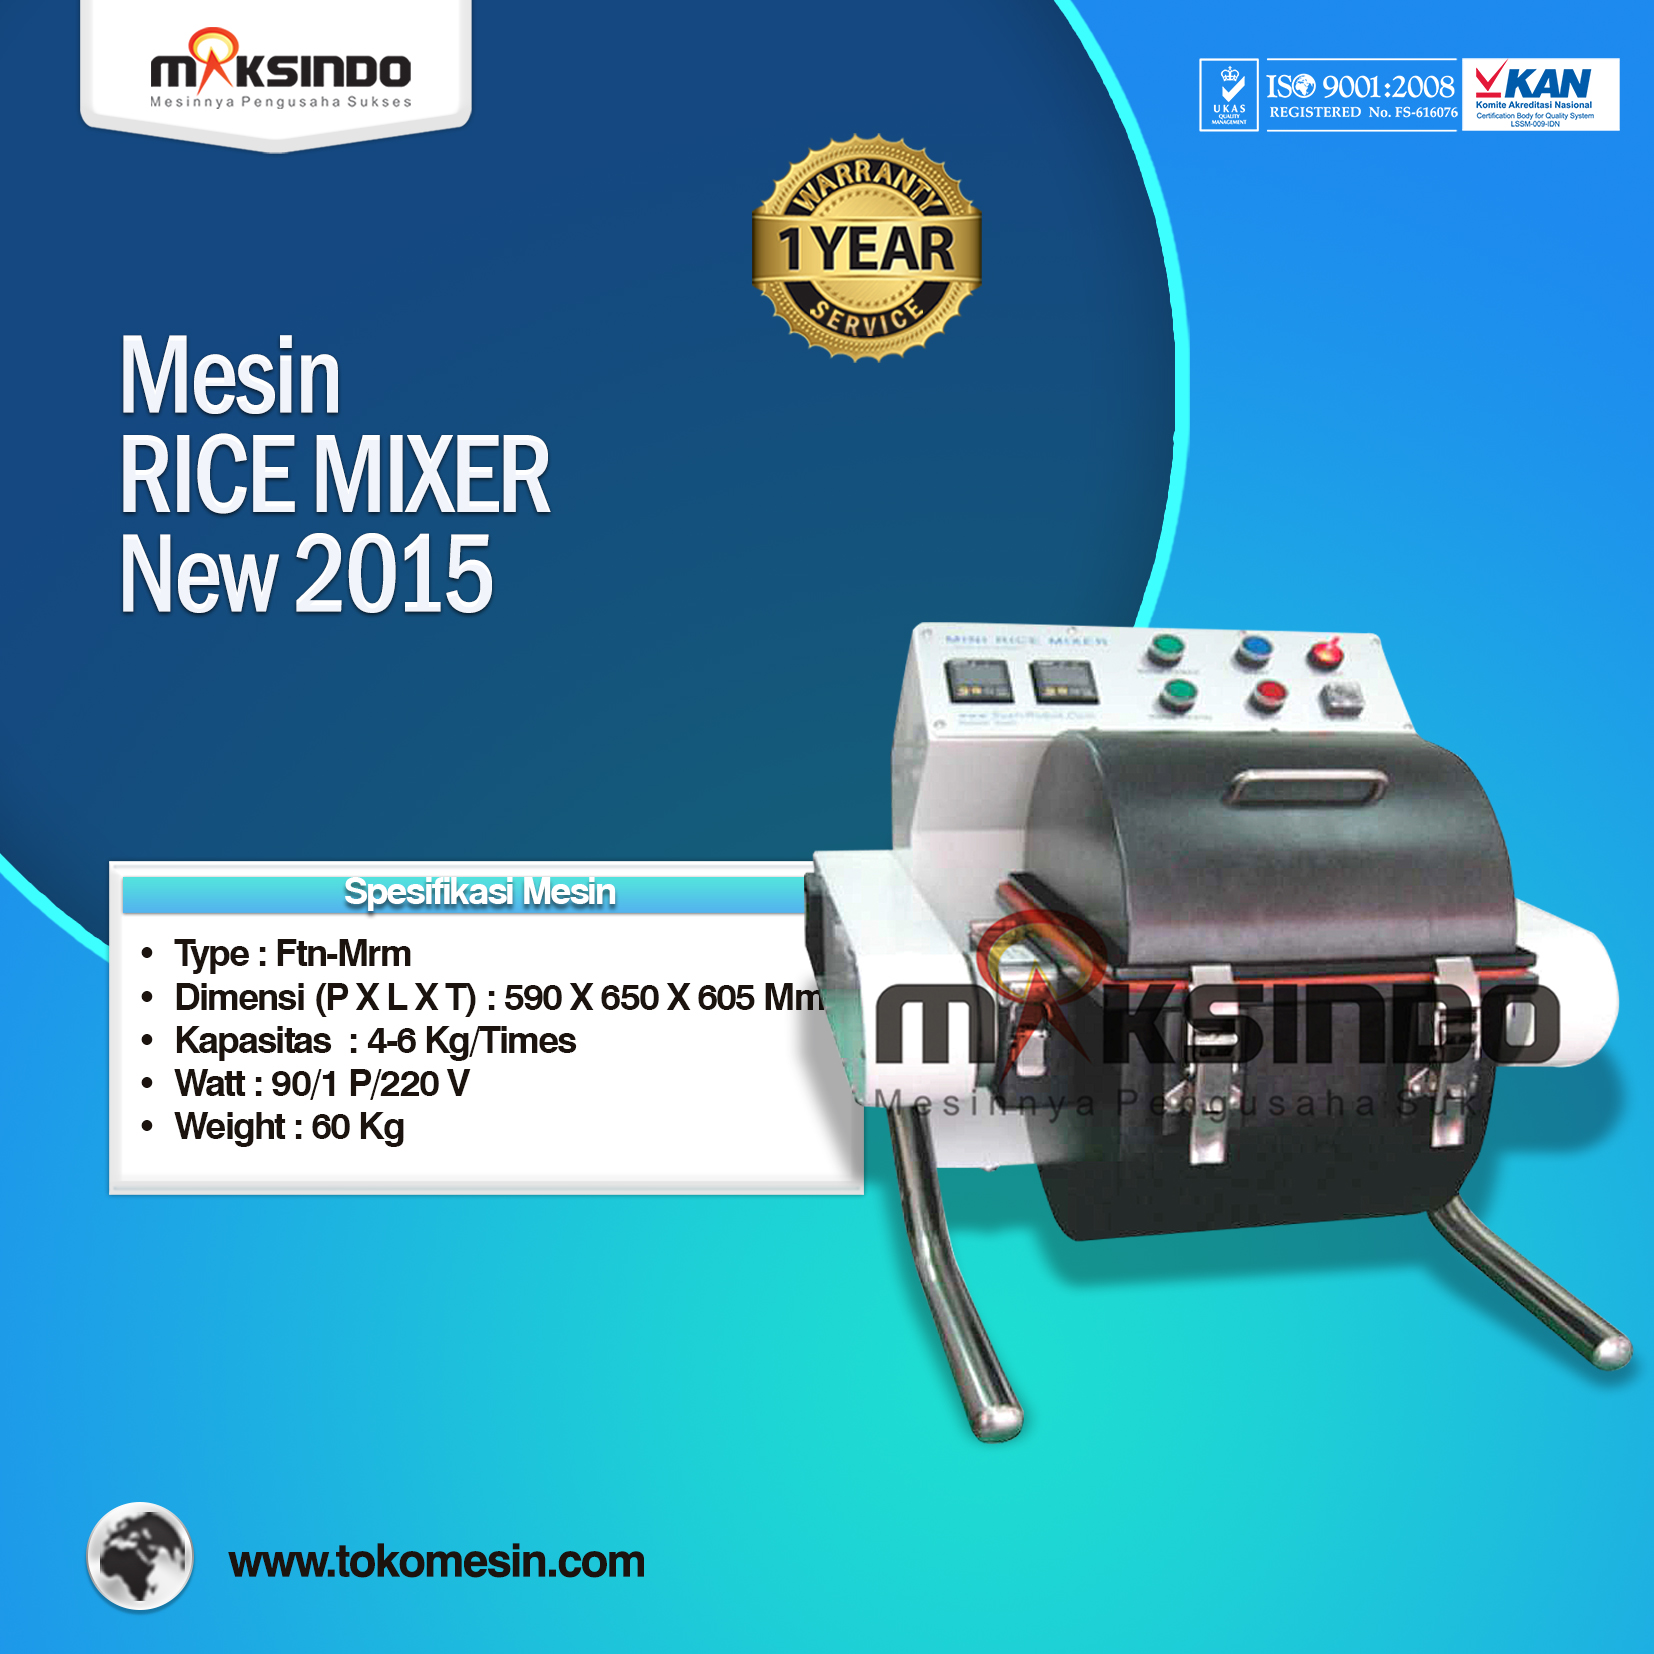 Mesin RICE MIXER New 2015